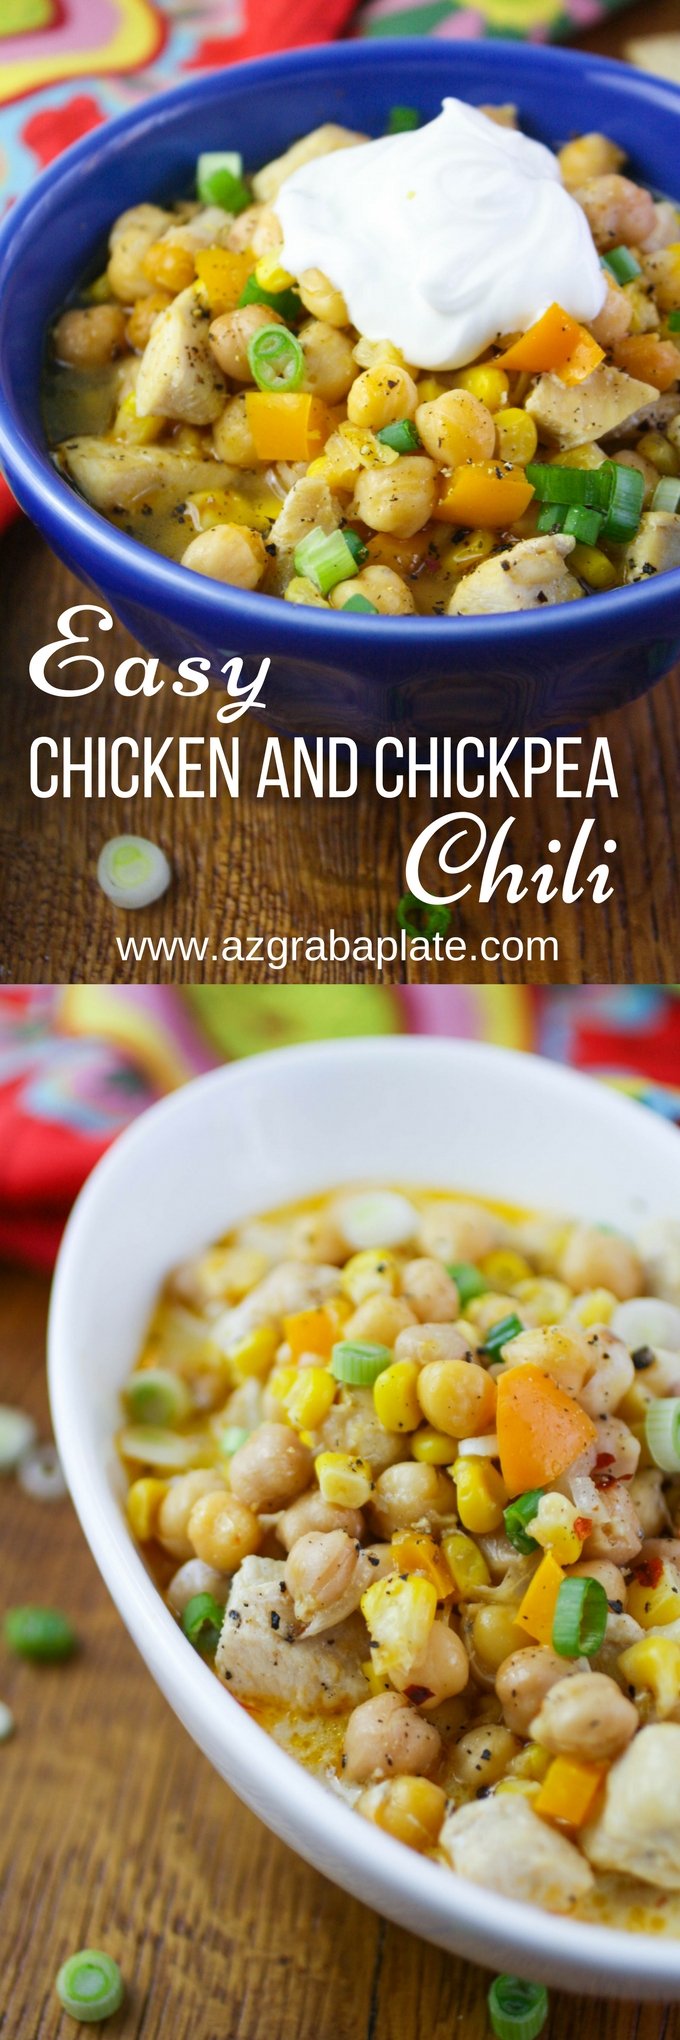 Easy Chicken and Chickpea Chili will be a hit on a cold night! You'll love this chili for it's big flavor, heartiness, and because it's so easy to make!